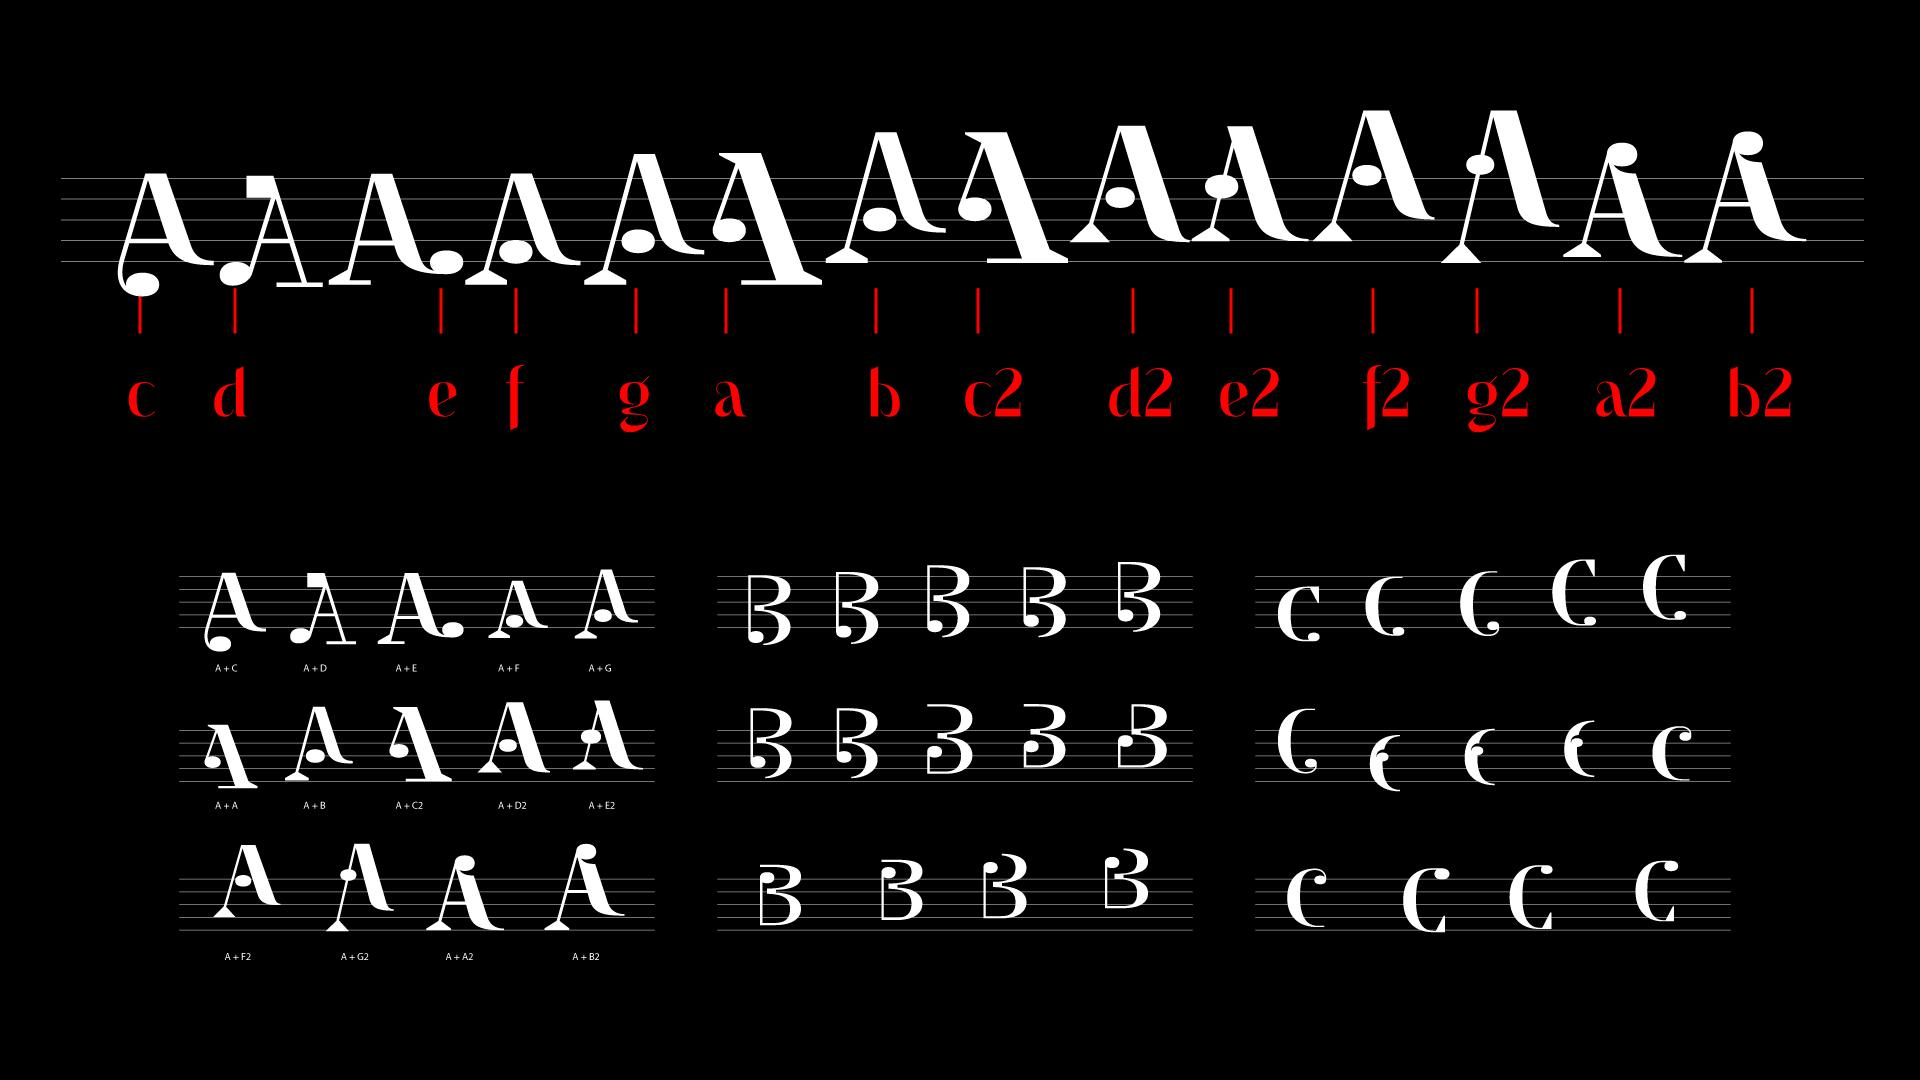 World's First Listenable And Playable Font